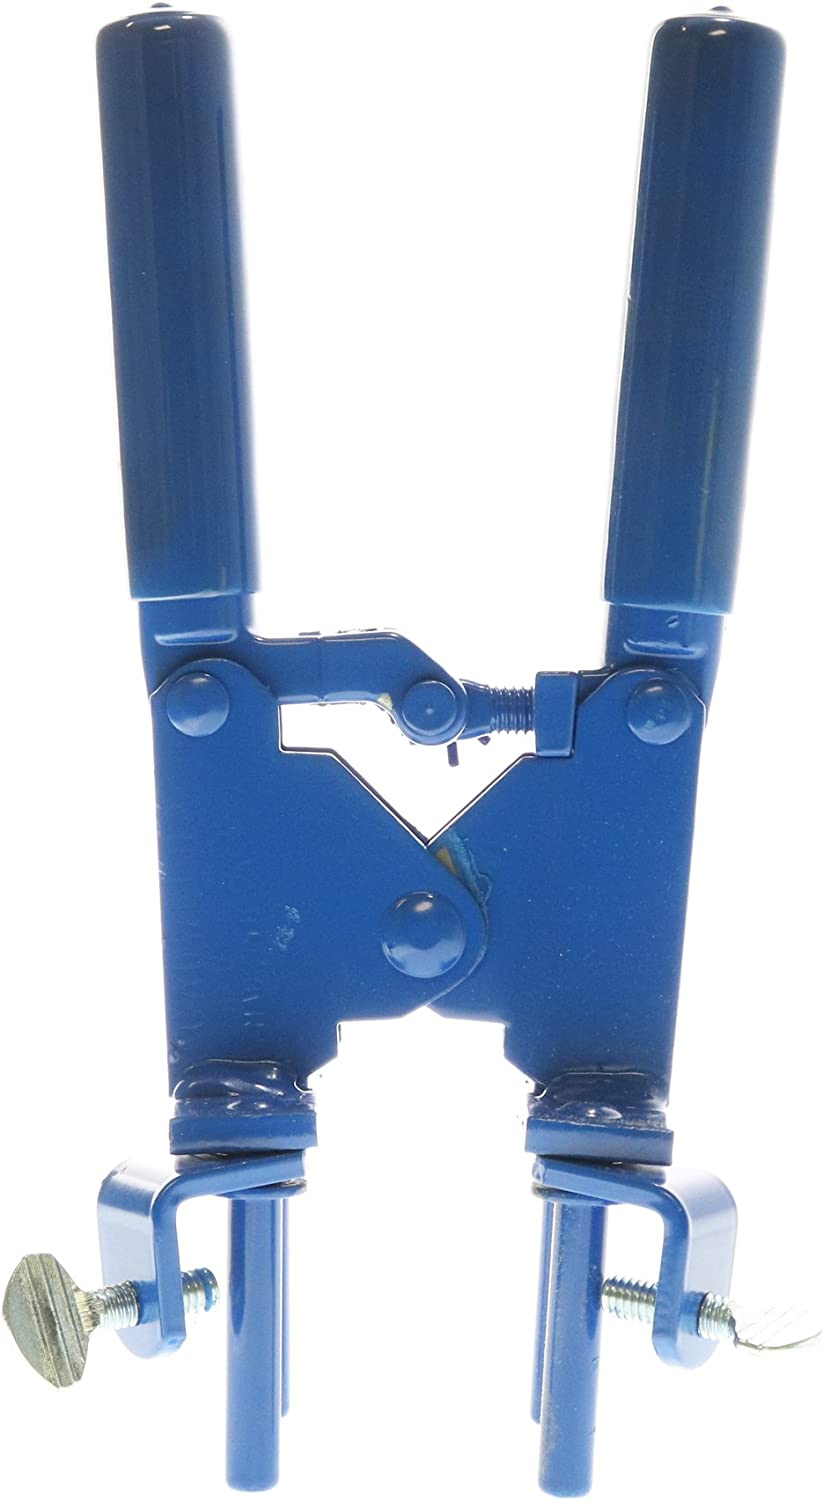 Cadweld Erico L160 E-Z-Change Clamp Style Handle For Molds, Blue